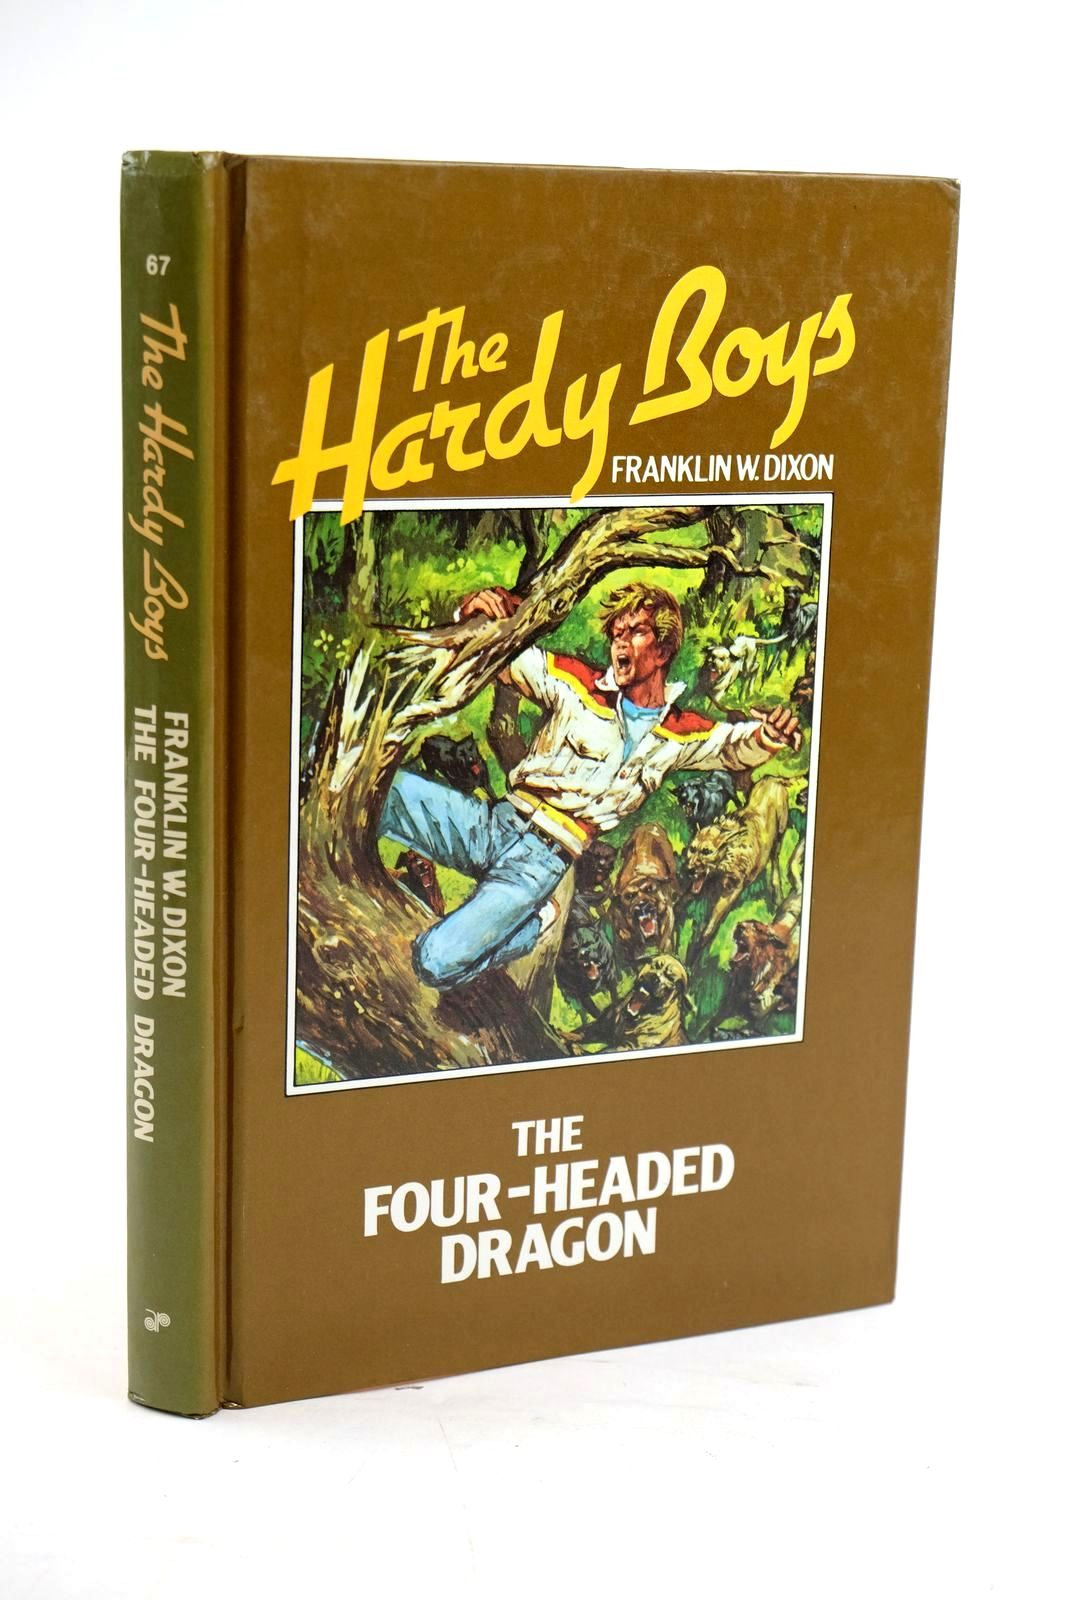 Photo of THE FOUR-HEADED DRAGON written by Dixon, Franklin W. illustrated by Morrill, Leslie published by Angus & Robertson Publishers (STOCK CODE: 1319554)  for sale by Stella & Rose's Books